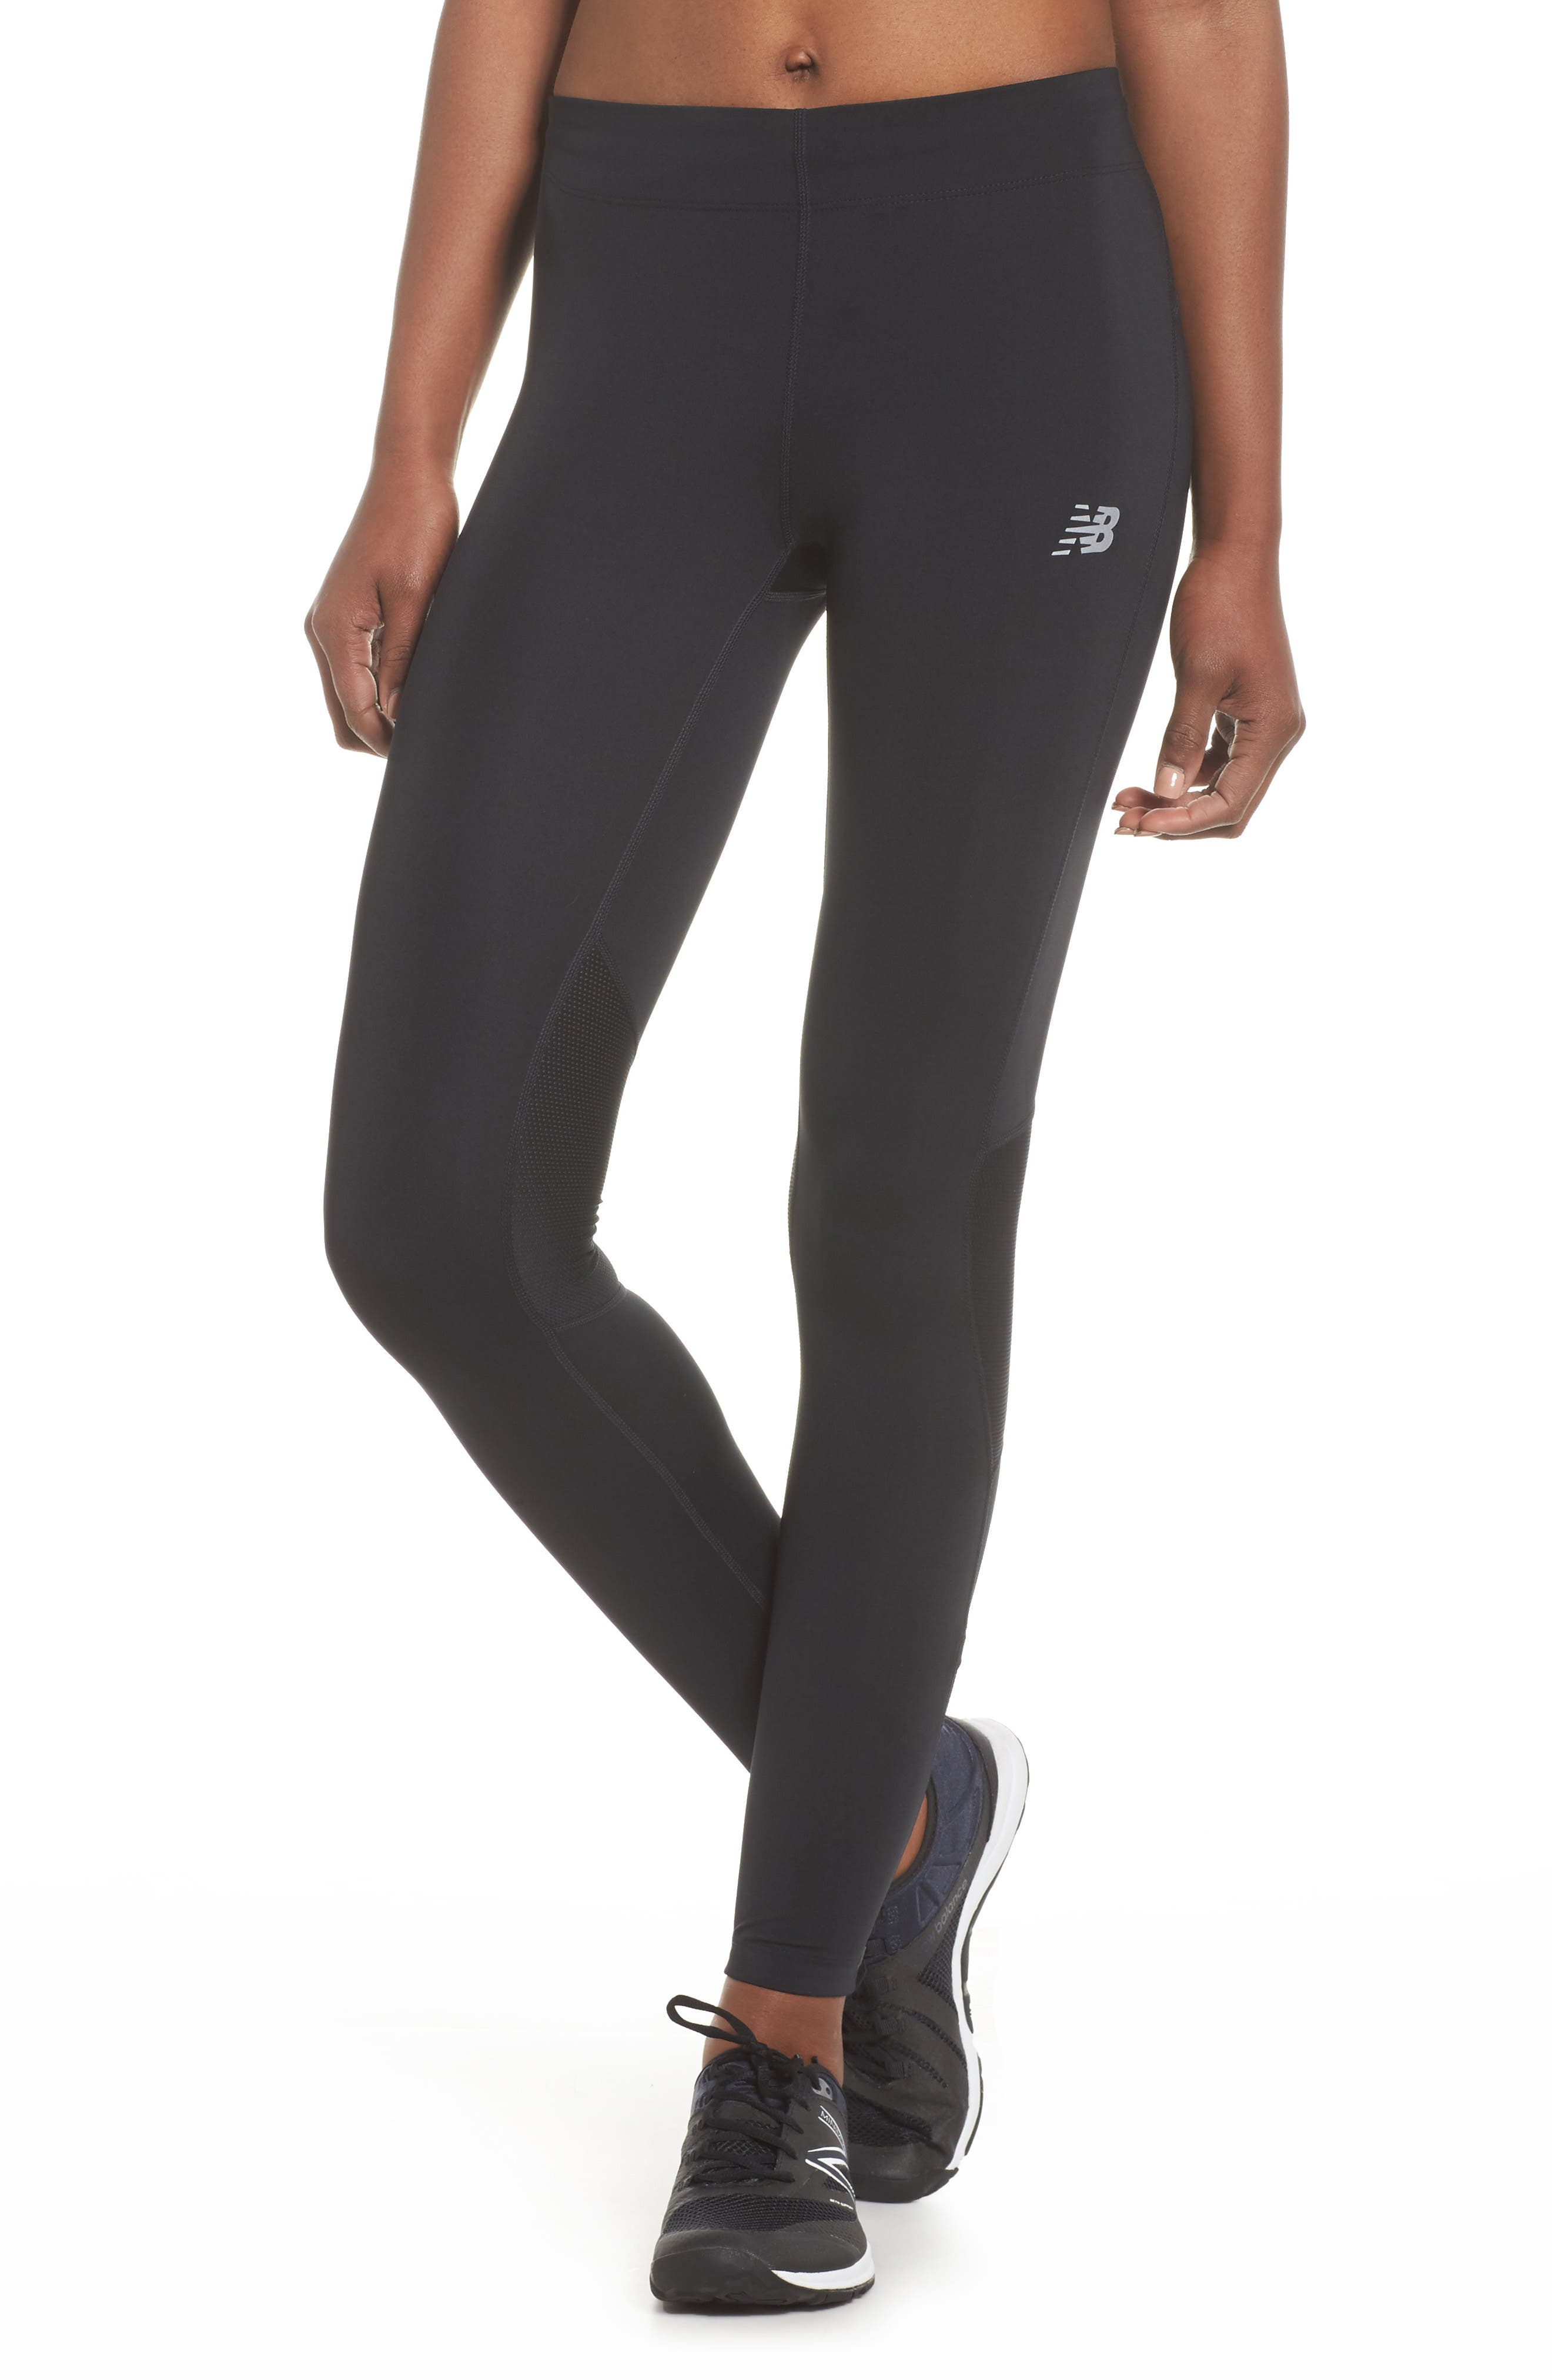 Impact Premium Running Tights,                         Main,                         color, 001